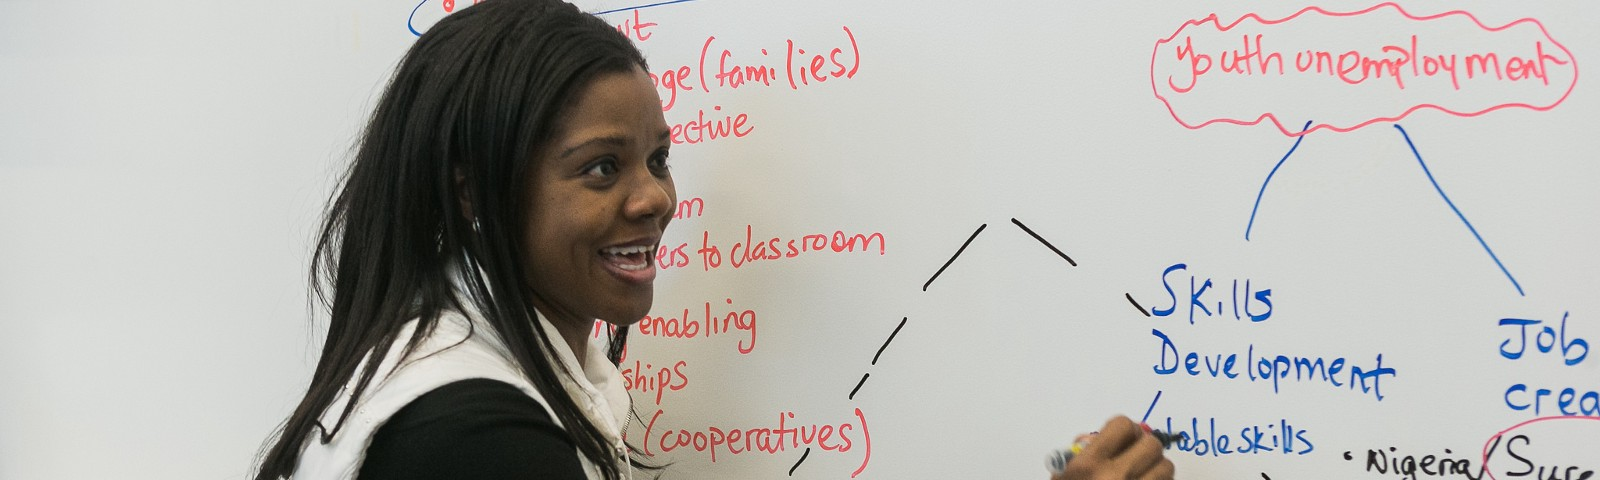 """Njideka Harry's """"5 Ps"""" for Using Tech to Serve - innovations online"""